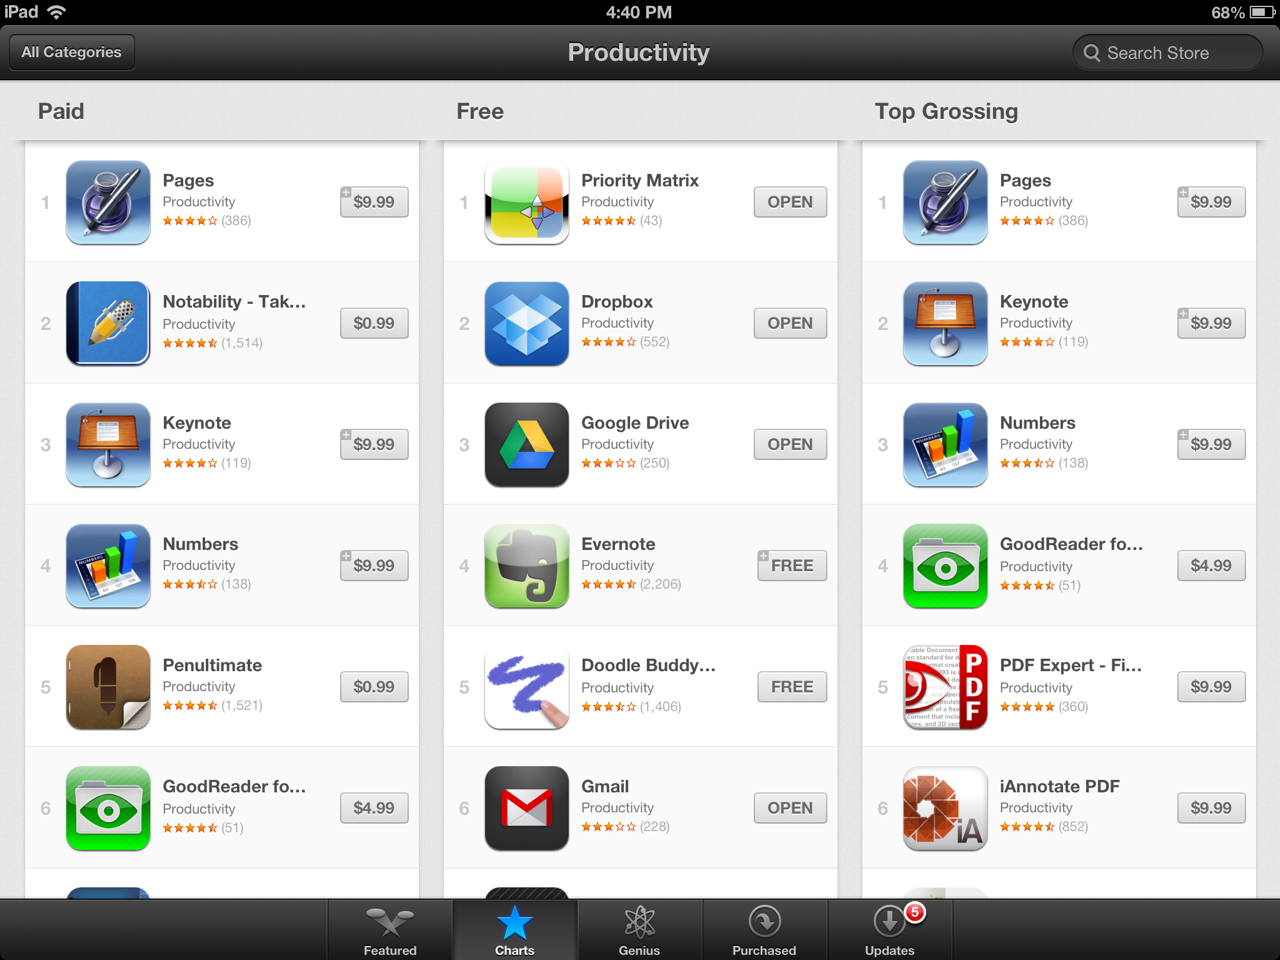 It's Official. Priority Matrix is the #1 productivity app in the US iPad App Store!